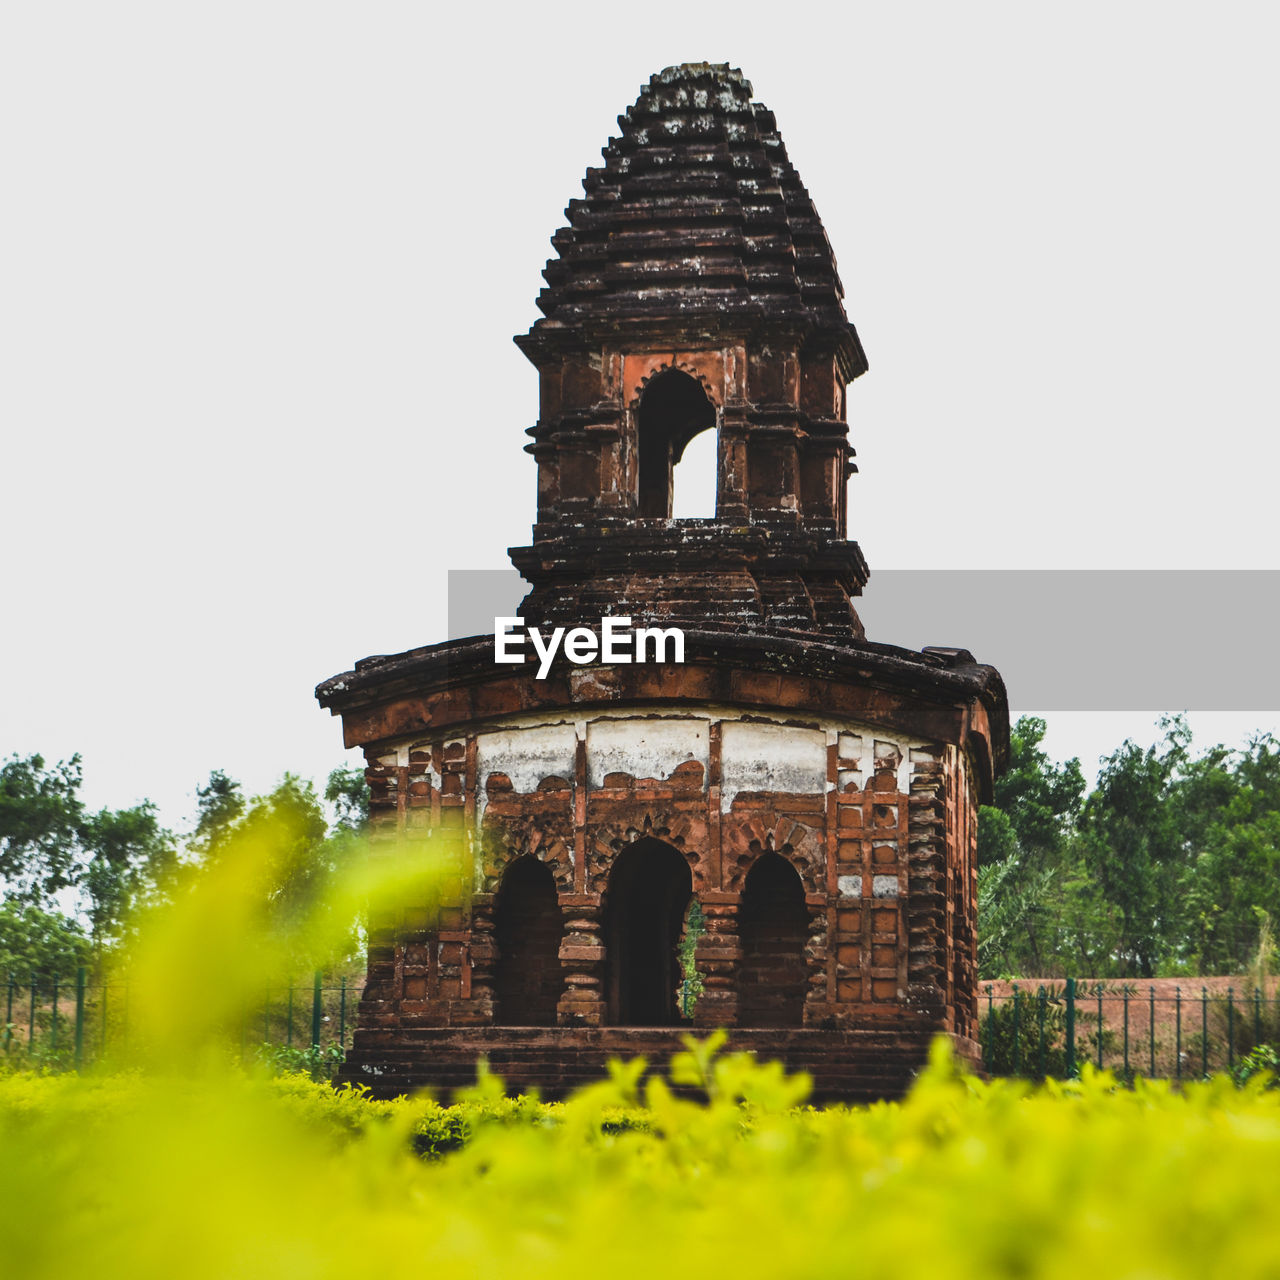 architecture, built structure, building exterior, religion, place of worship, low angle view, history, spirituality, clear sky, old ruin, travel destinations, day, outdoors, ancient, no people, tree, nature, ancient civilization, sky